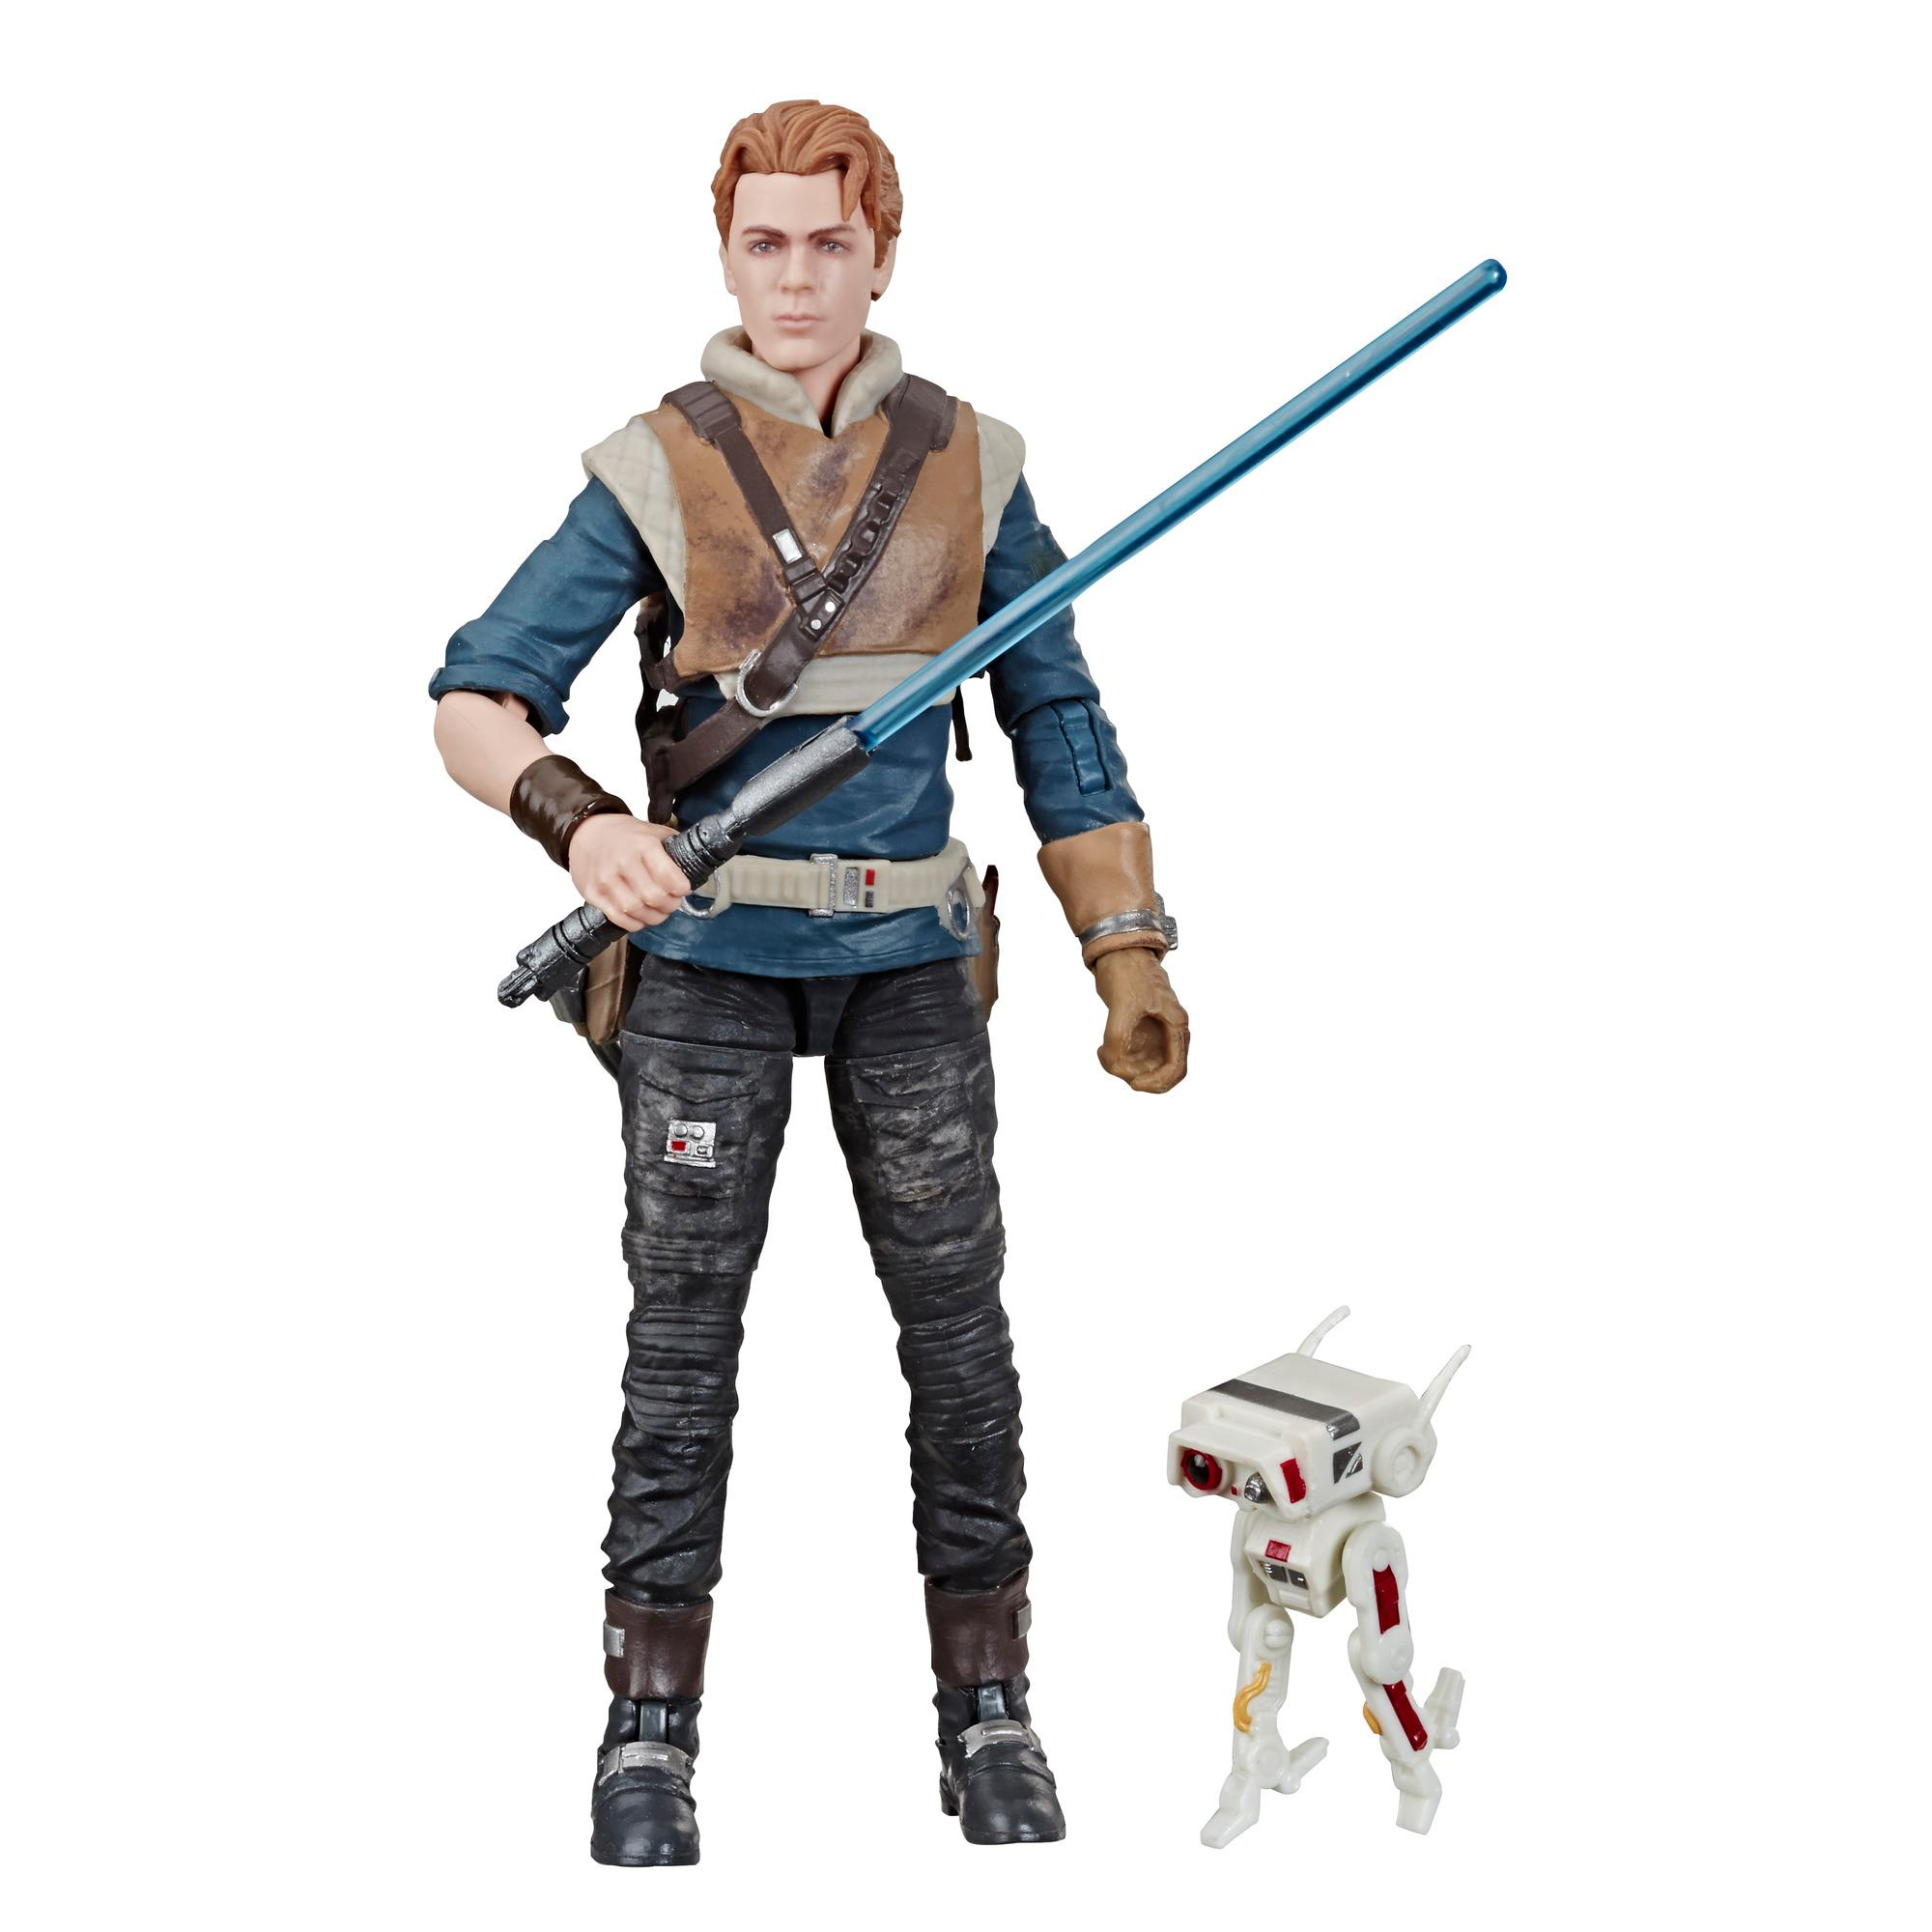 Star Wars The Black Series Cal Kestis Toy 6-inch Scale Star Wars Jedi: Fallen Order Action Figure, Kids Ages 4 and Up